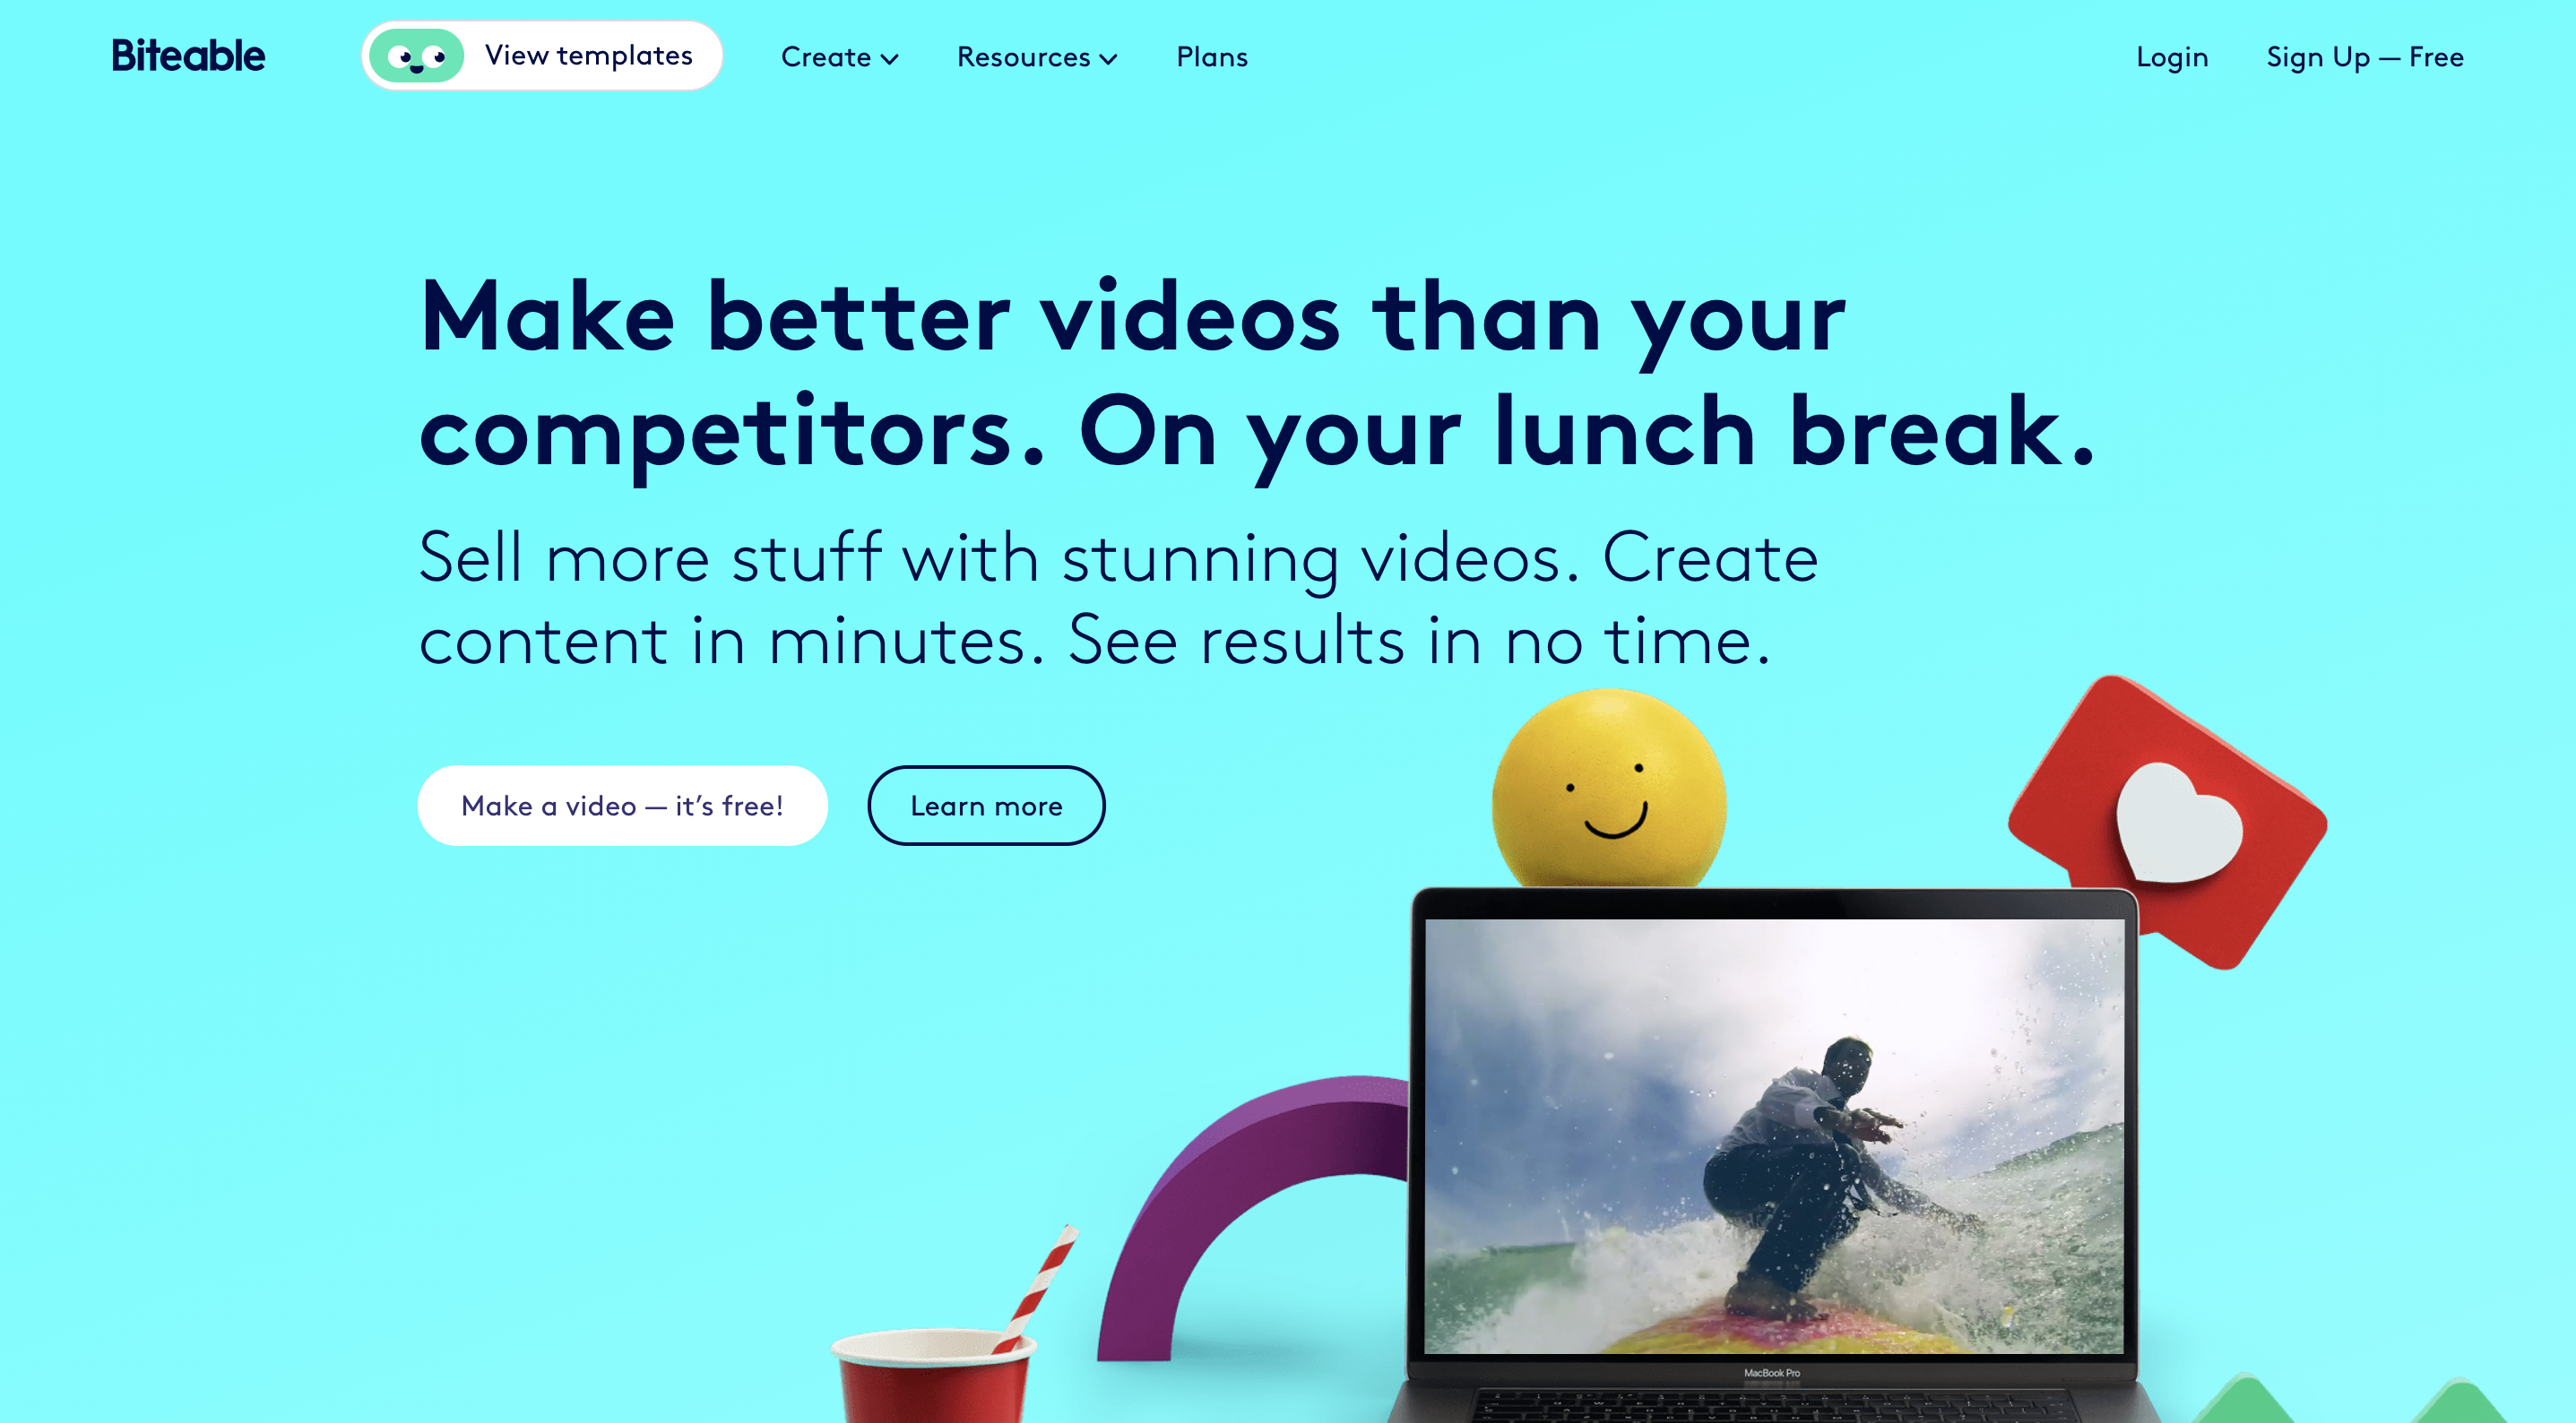 A screenshot of video editing tool Biteable's website.